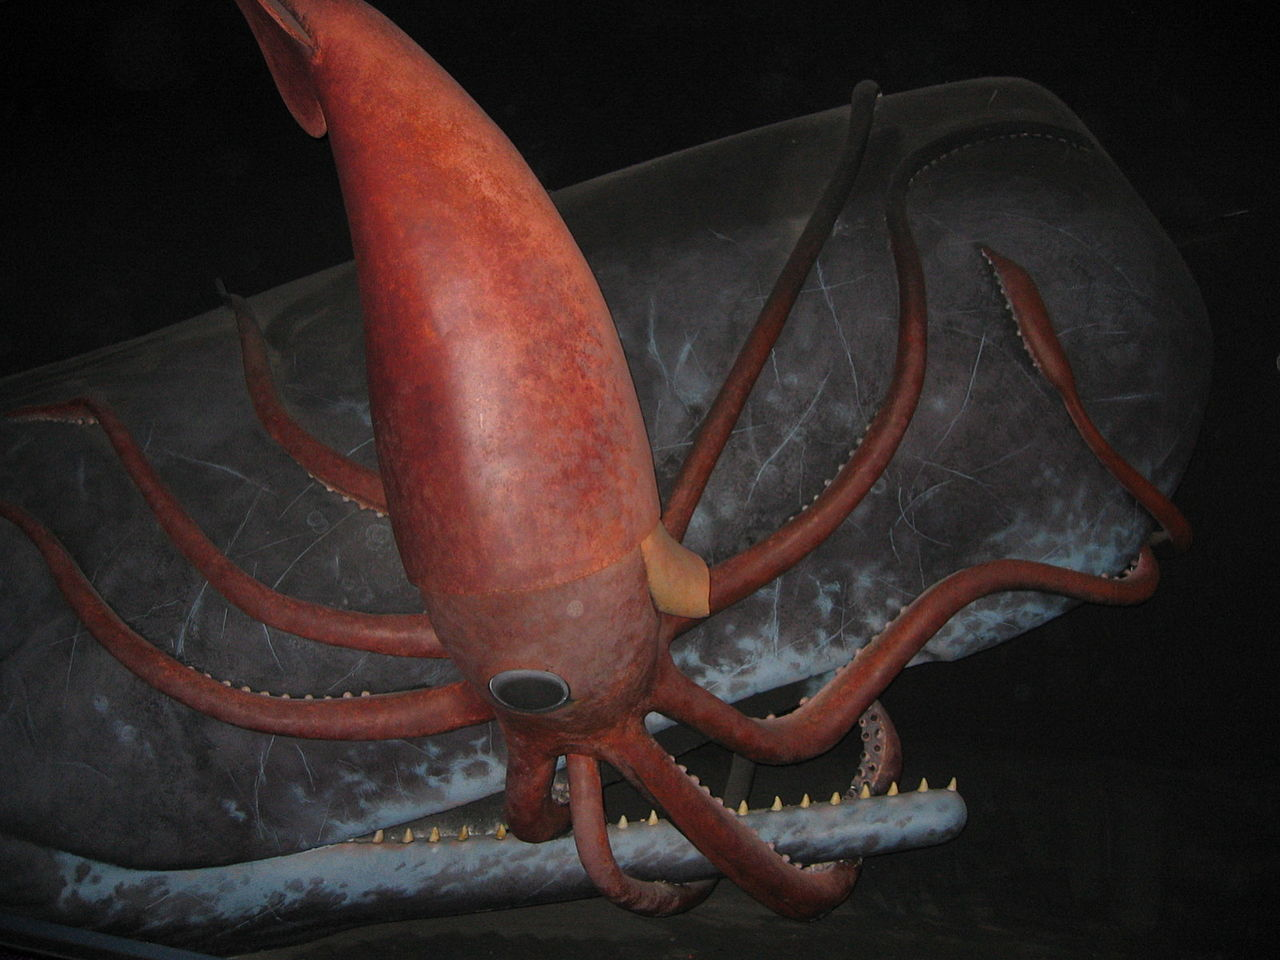 Display of sperm whale and giant squid battling in the Museum of Natural History